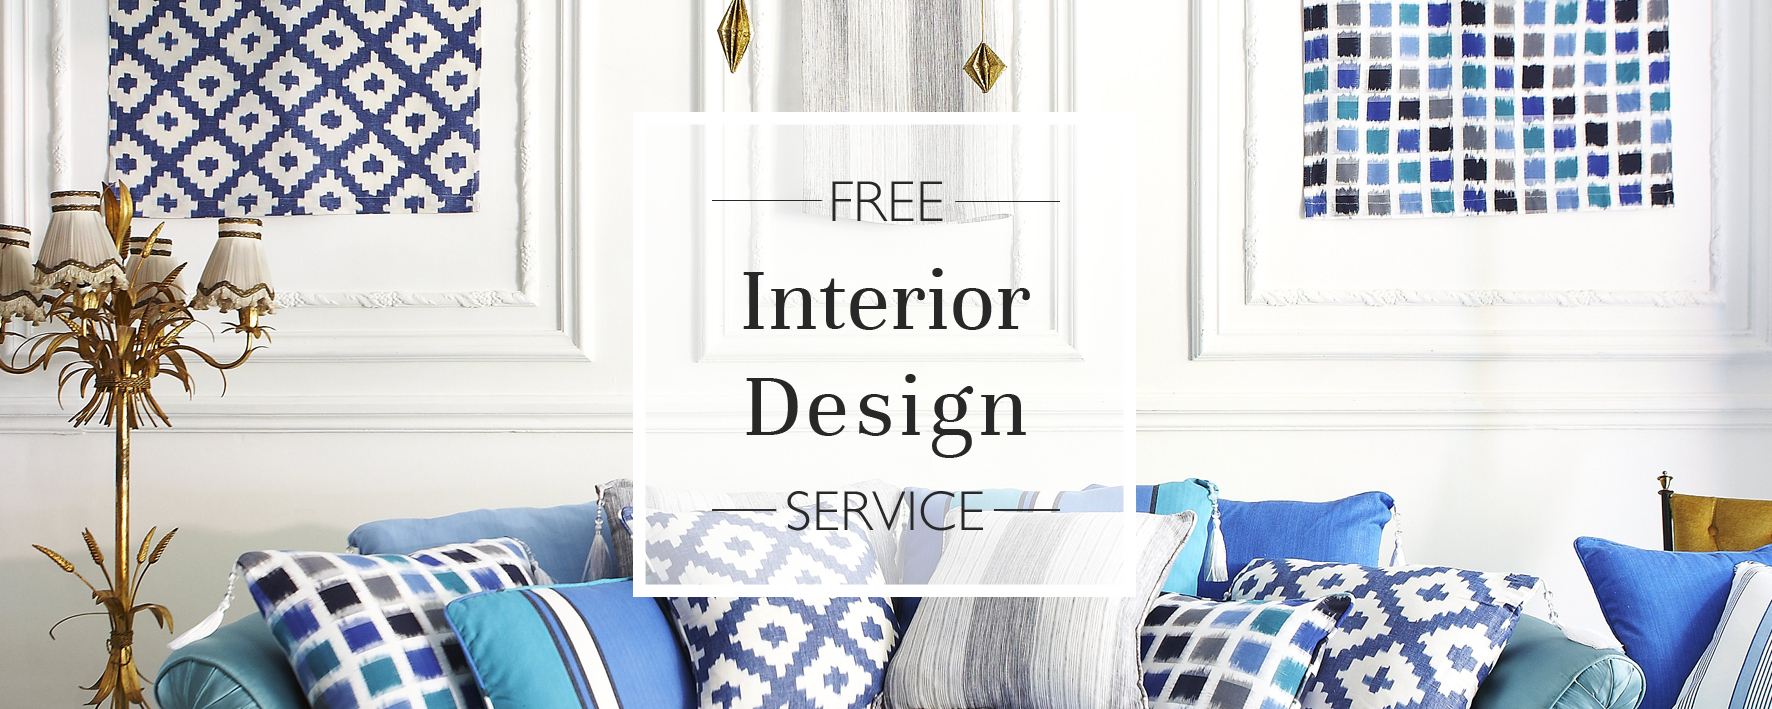 Free Interior Designer Advice Perfect Free Expert Online Interior Design Advice With Free